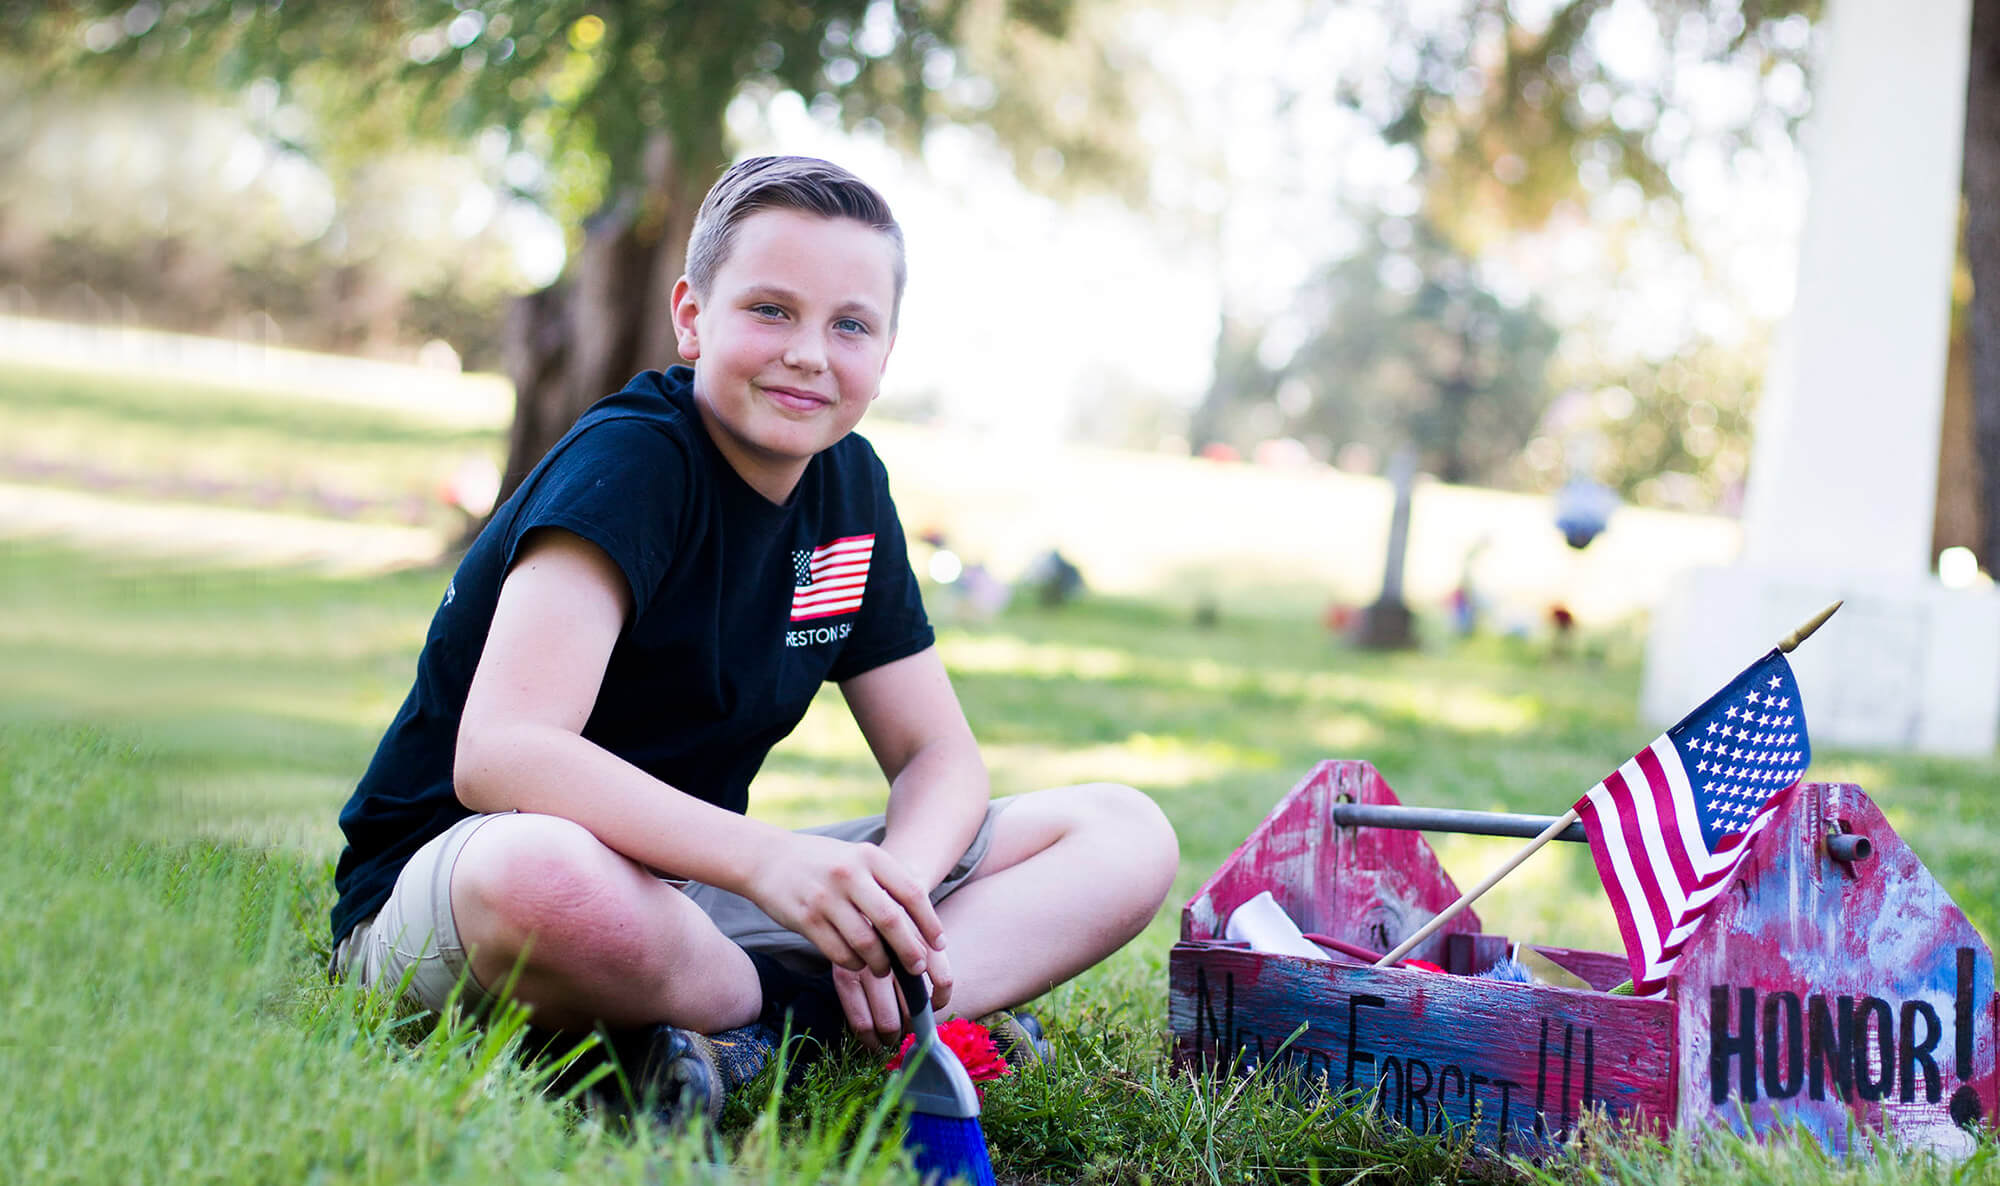 Boy smiling and sitting in the grass